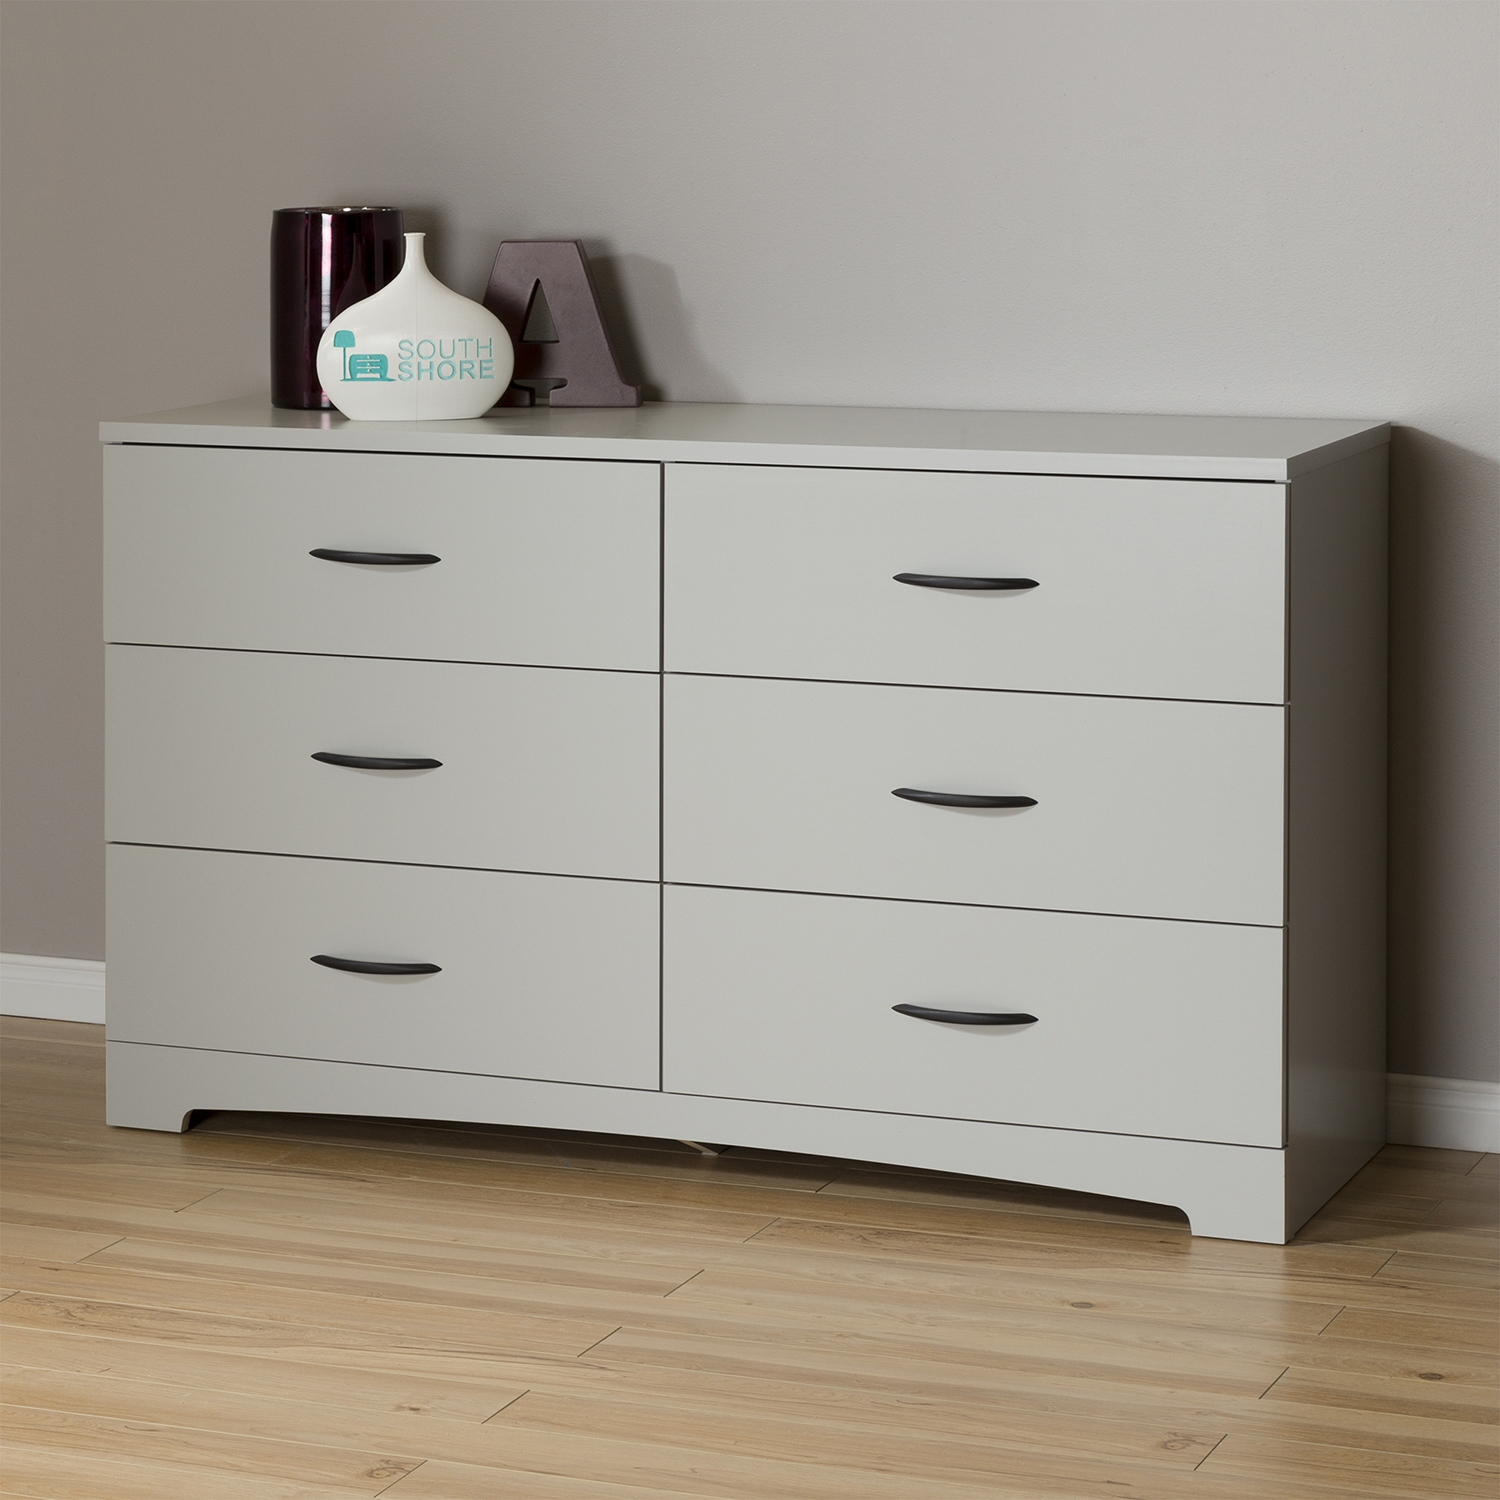 Step One Double Dresser - 6 Drawers, Soft Gray - SS-10105